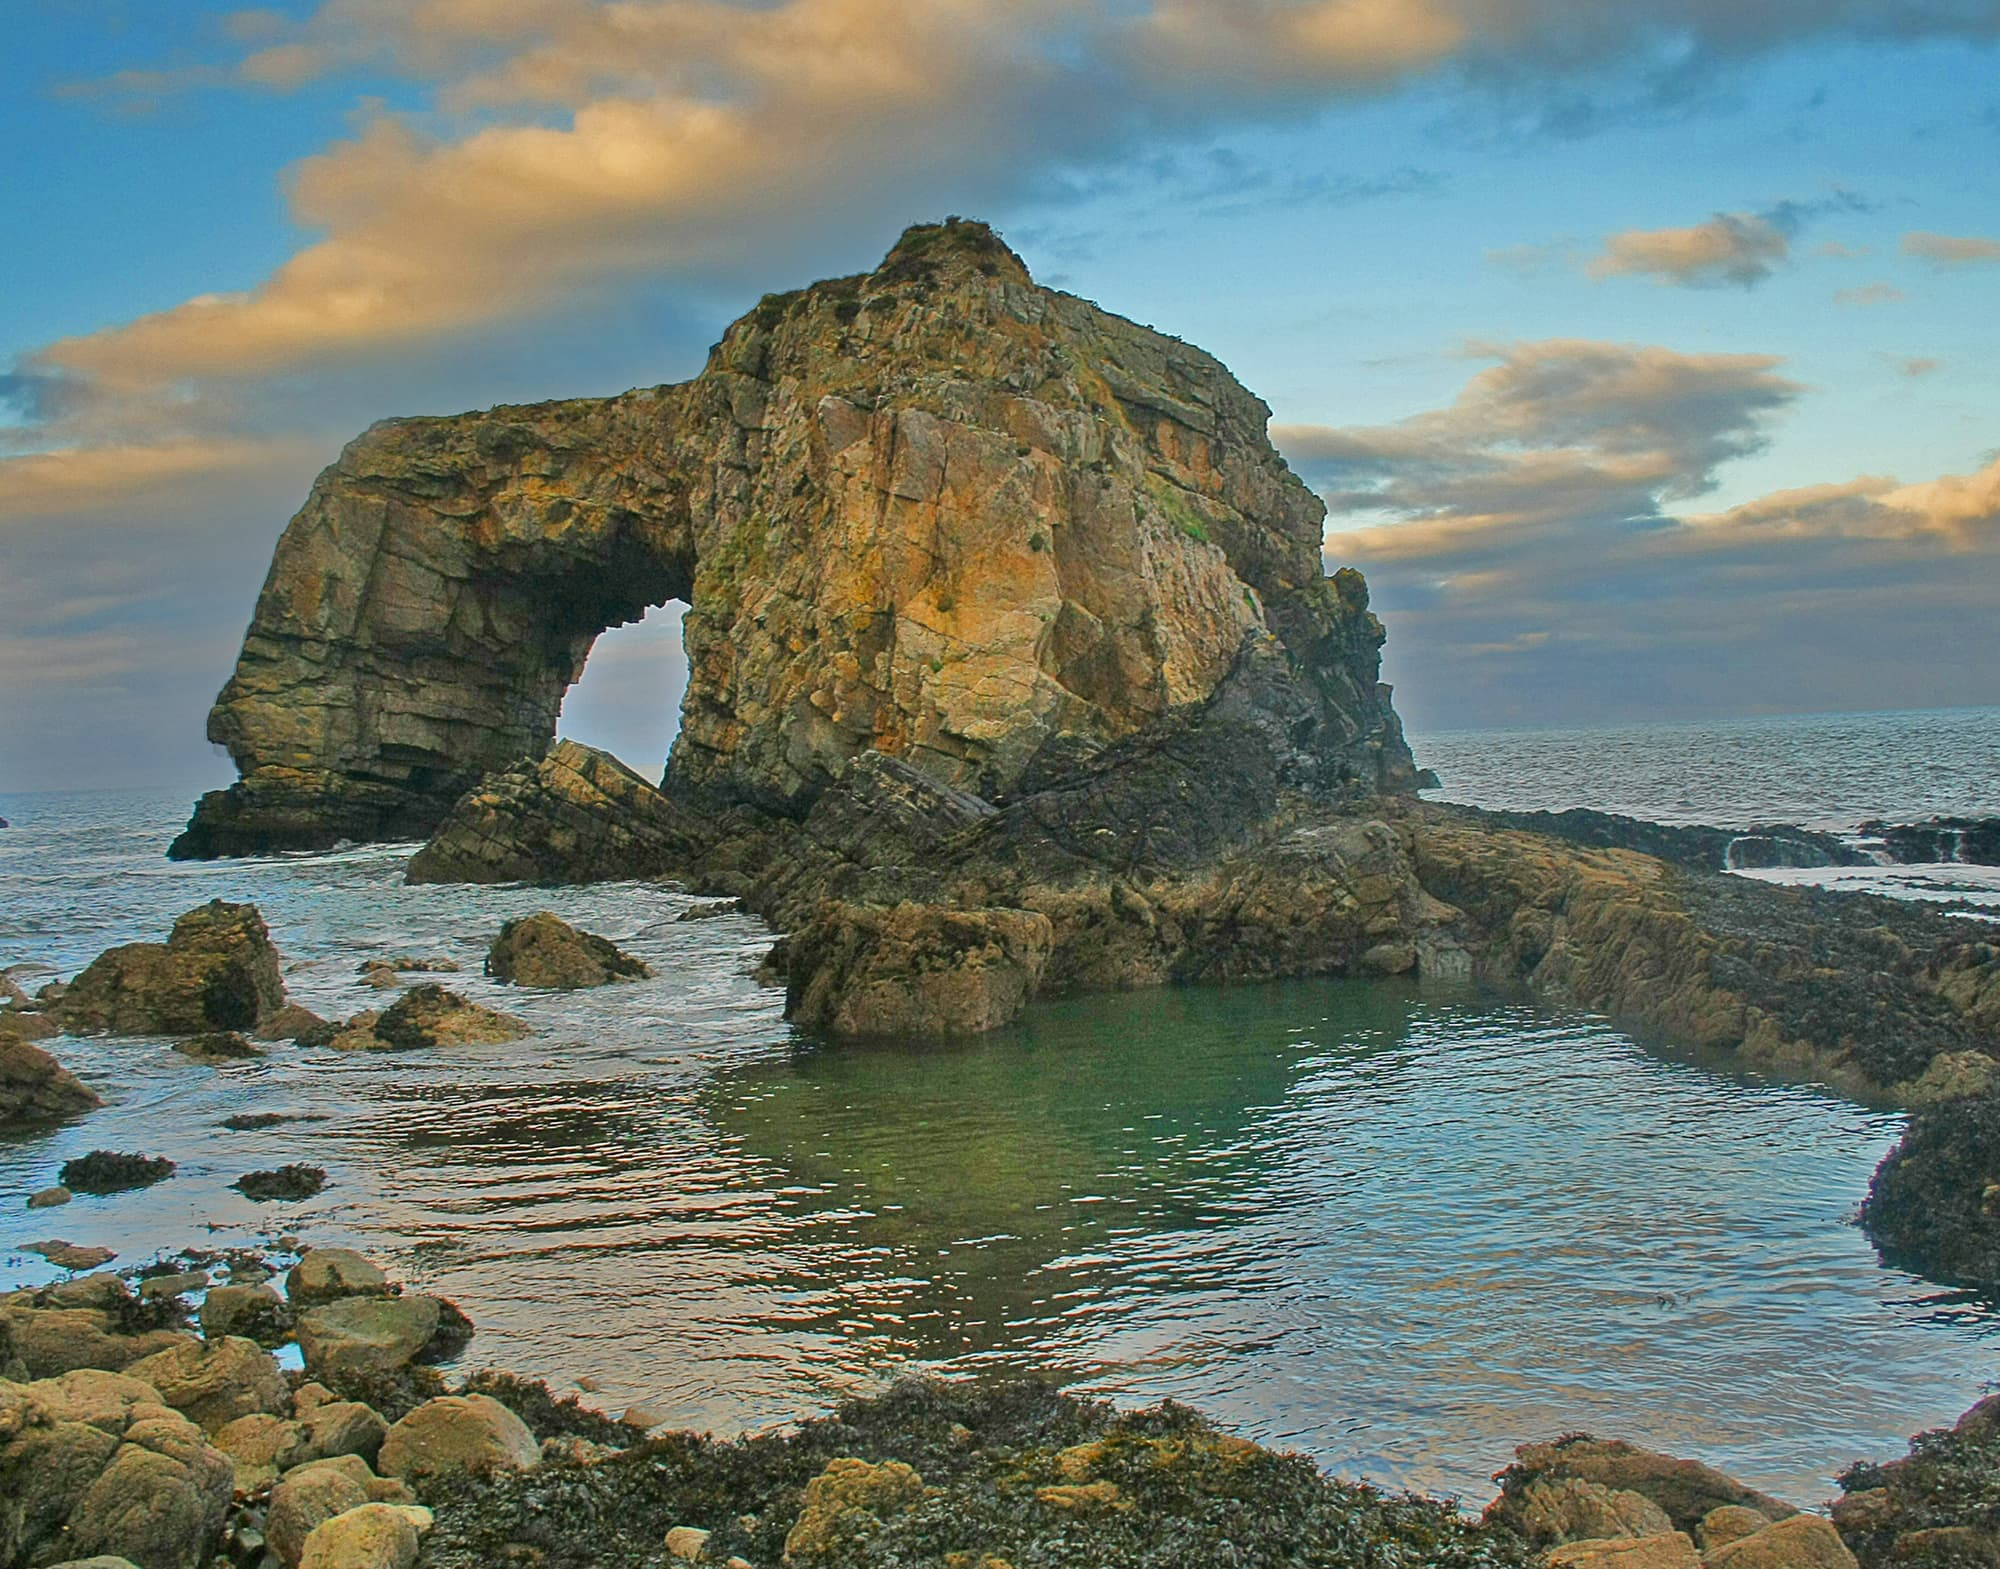 The Great Pollet Sea Arch, with dramatic skies at Fanad, Co. Donegal, Ireland